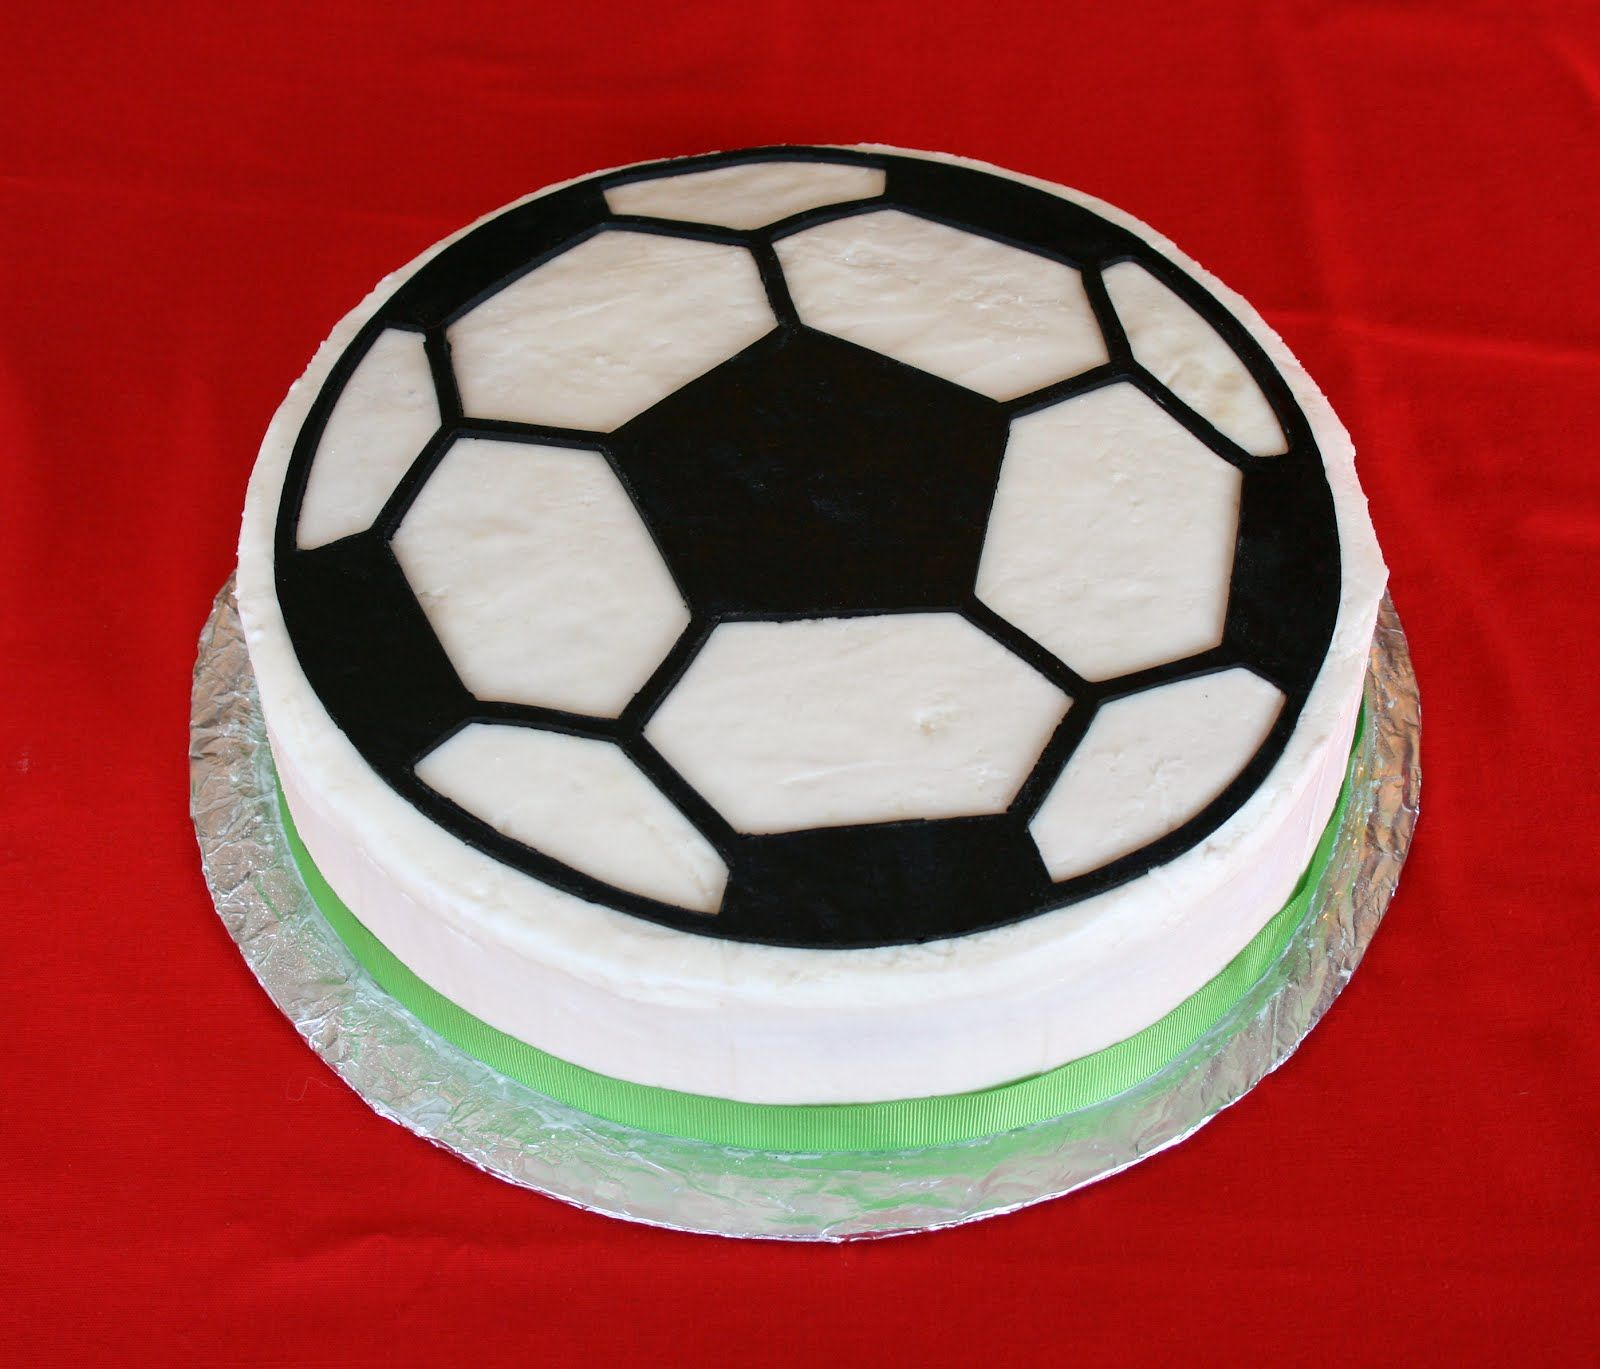 I Ve Had My Cricut Expression For Several Years Which I Love For Paper Crafting So I Picked Up The Cricut Ca Soccer Ball Cake Soccer Cake Soccer Birthday Cakes